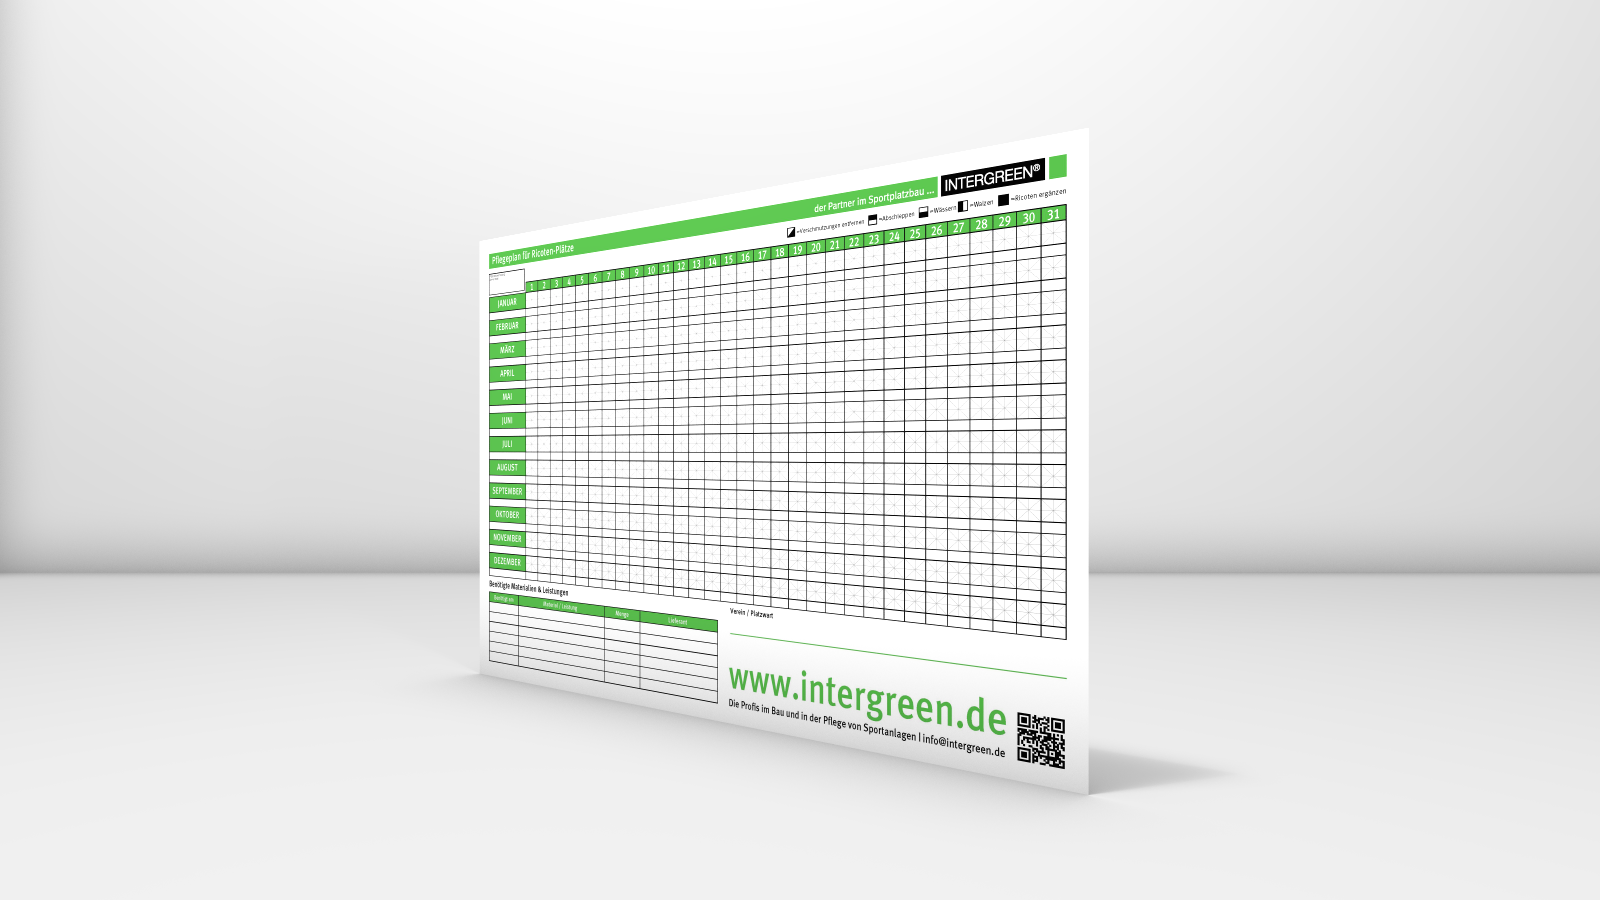 INTERGREEN BASIS WEB 20160129 001 Poster Pflegeplan Ricoten